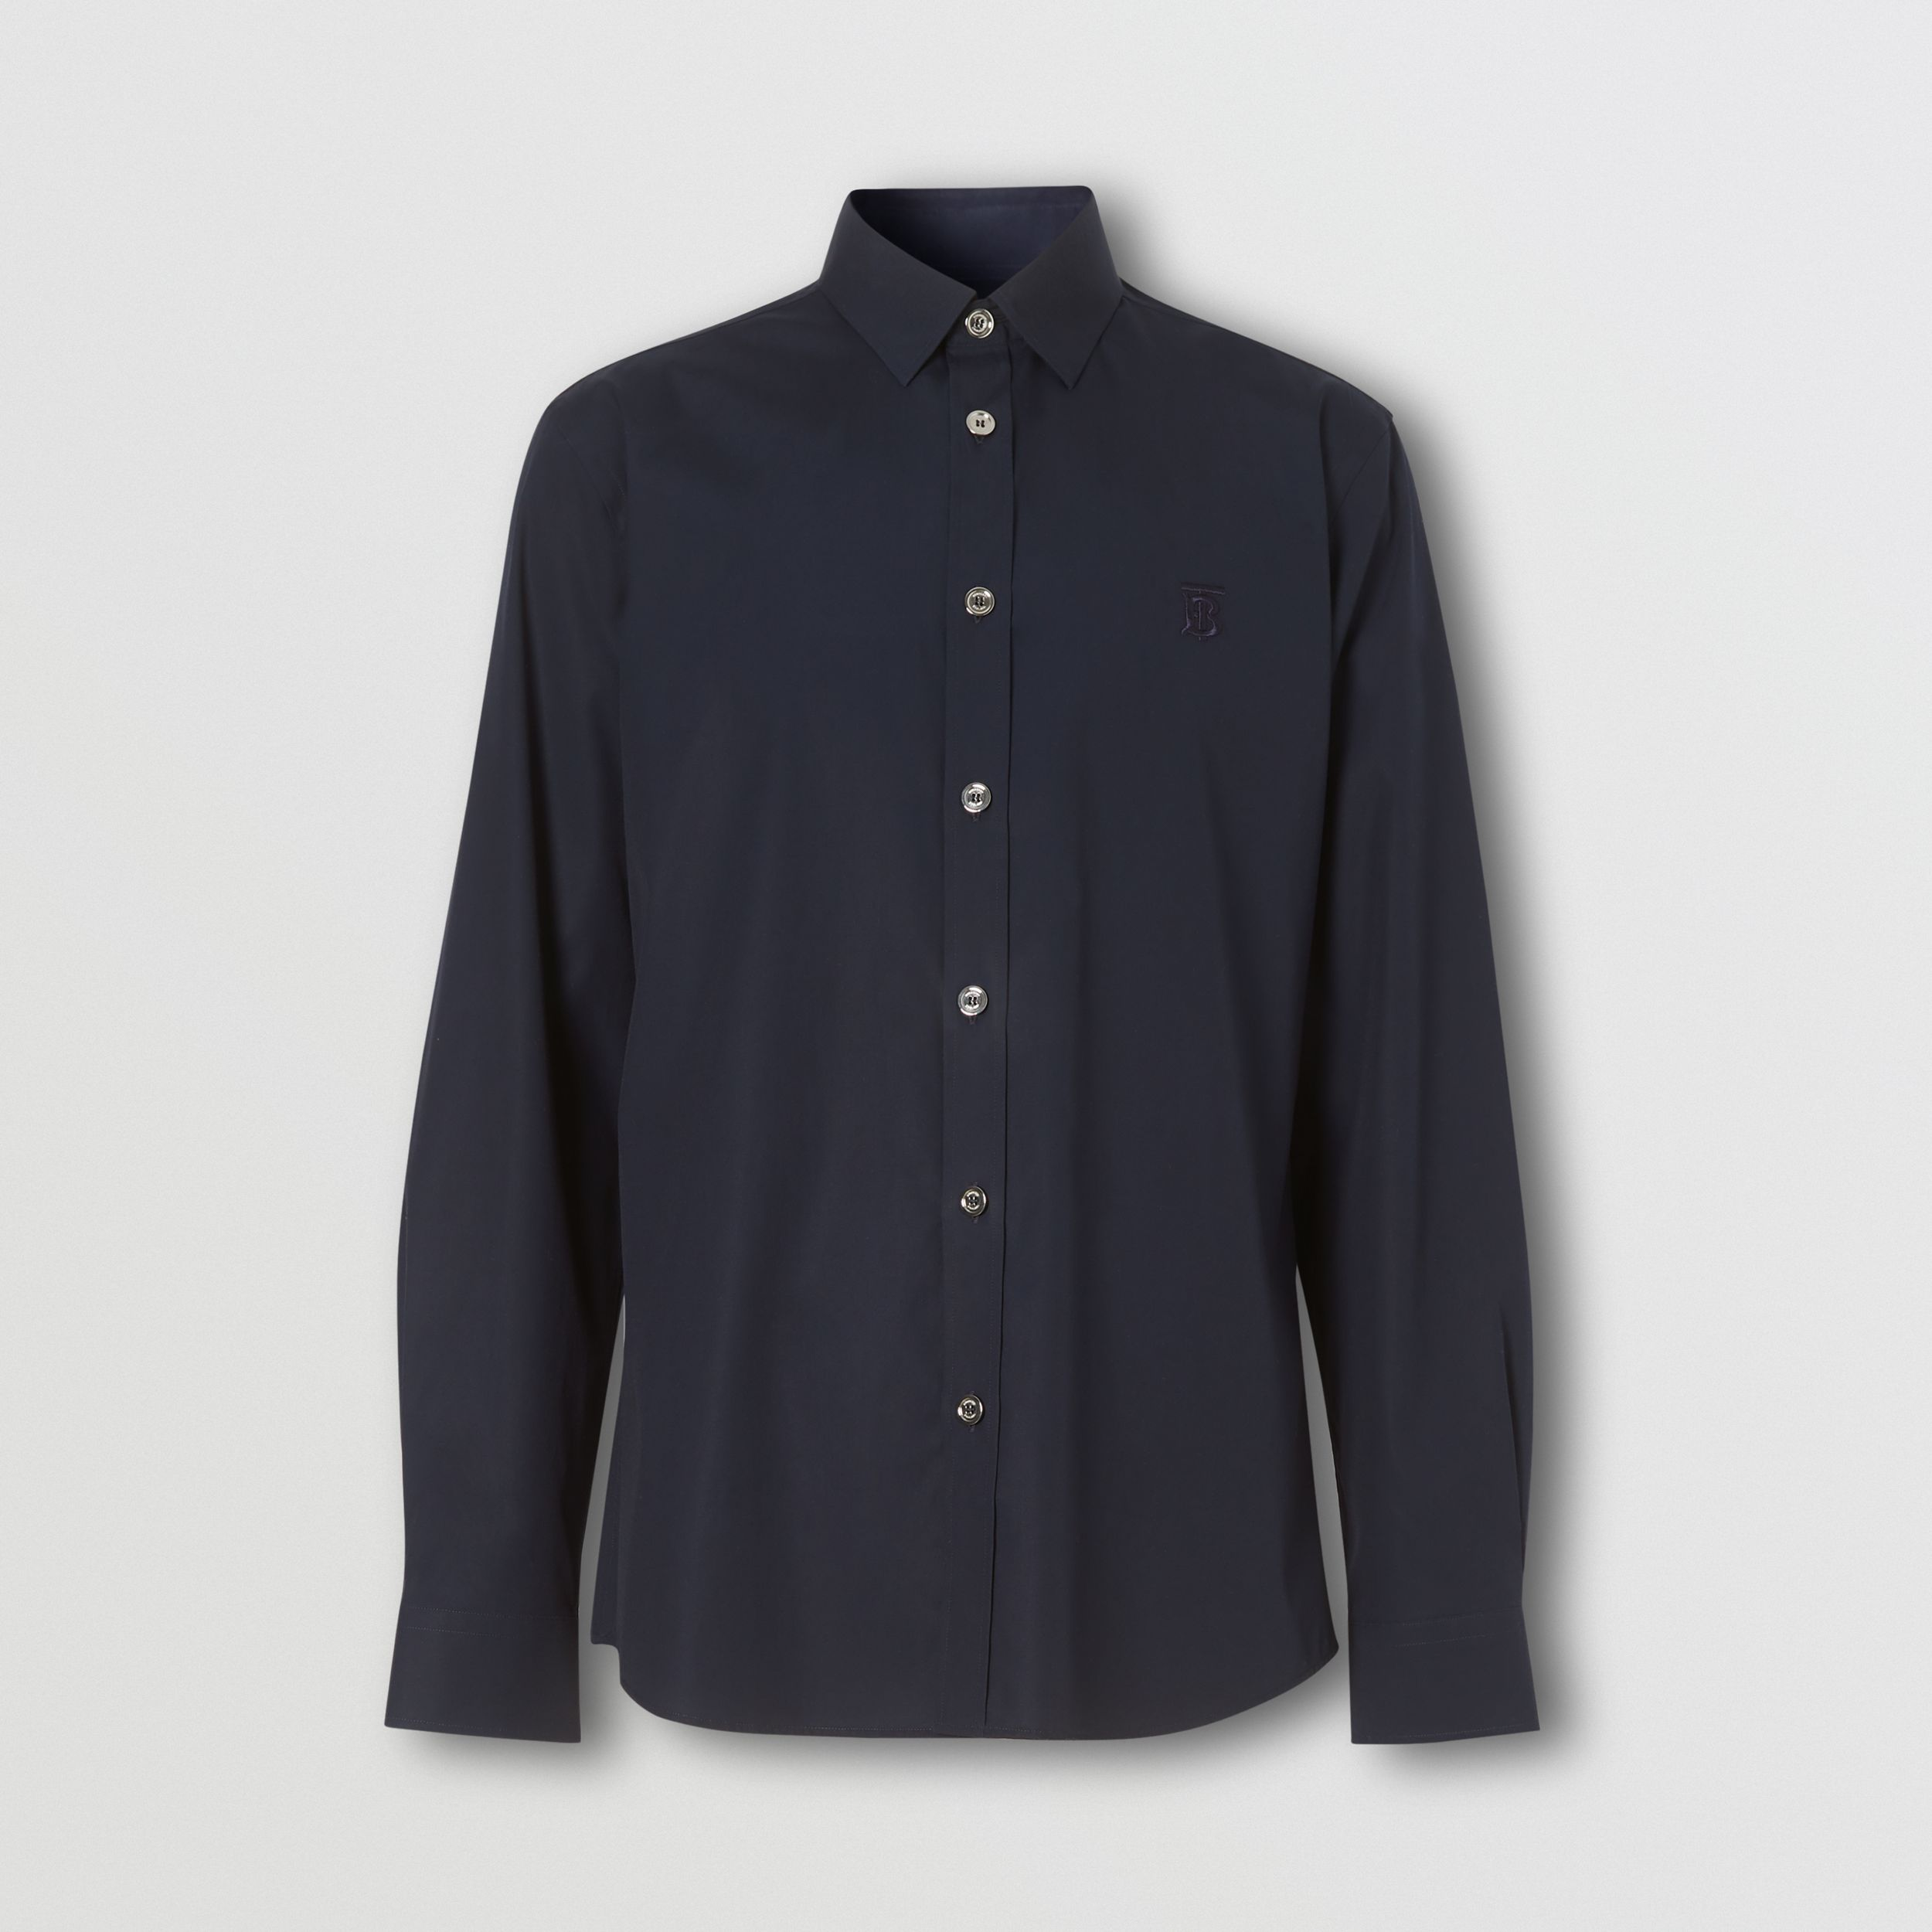 Monogram Motif Stretch Cotton Poplin Shirt in Navy - Men | Burberry Australia - 4